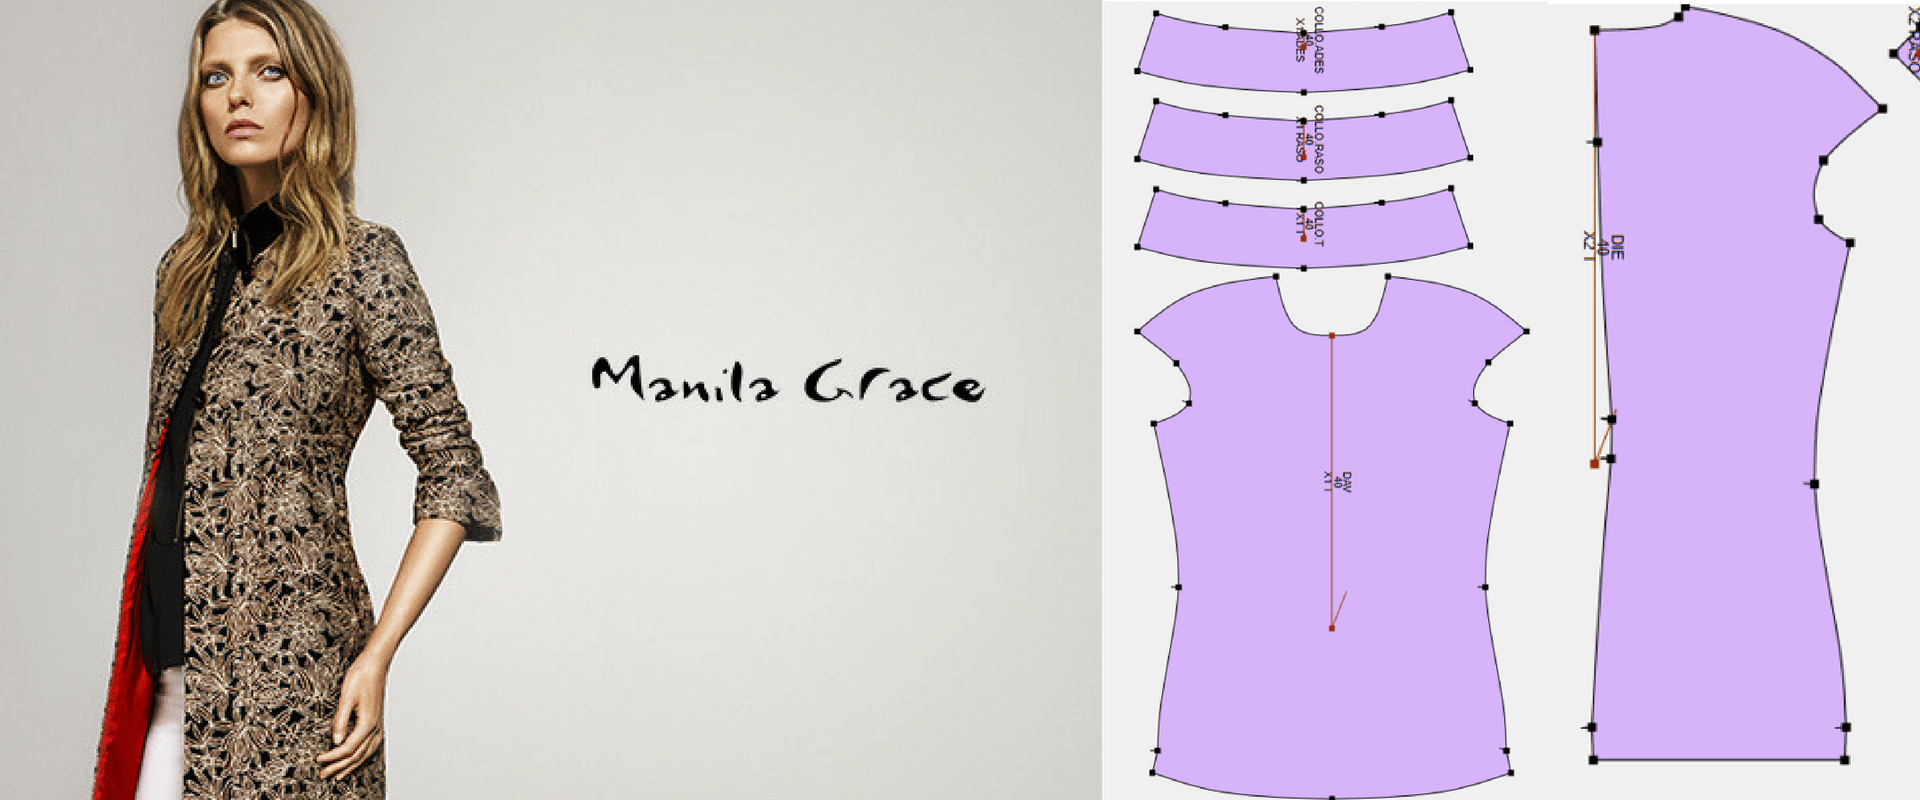 Manila grace chooses Crea Solution